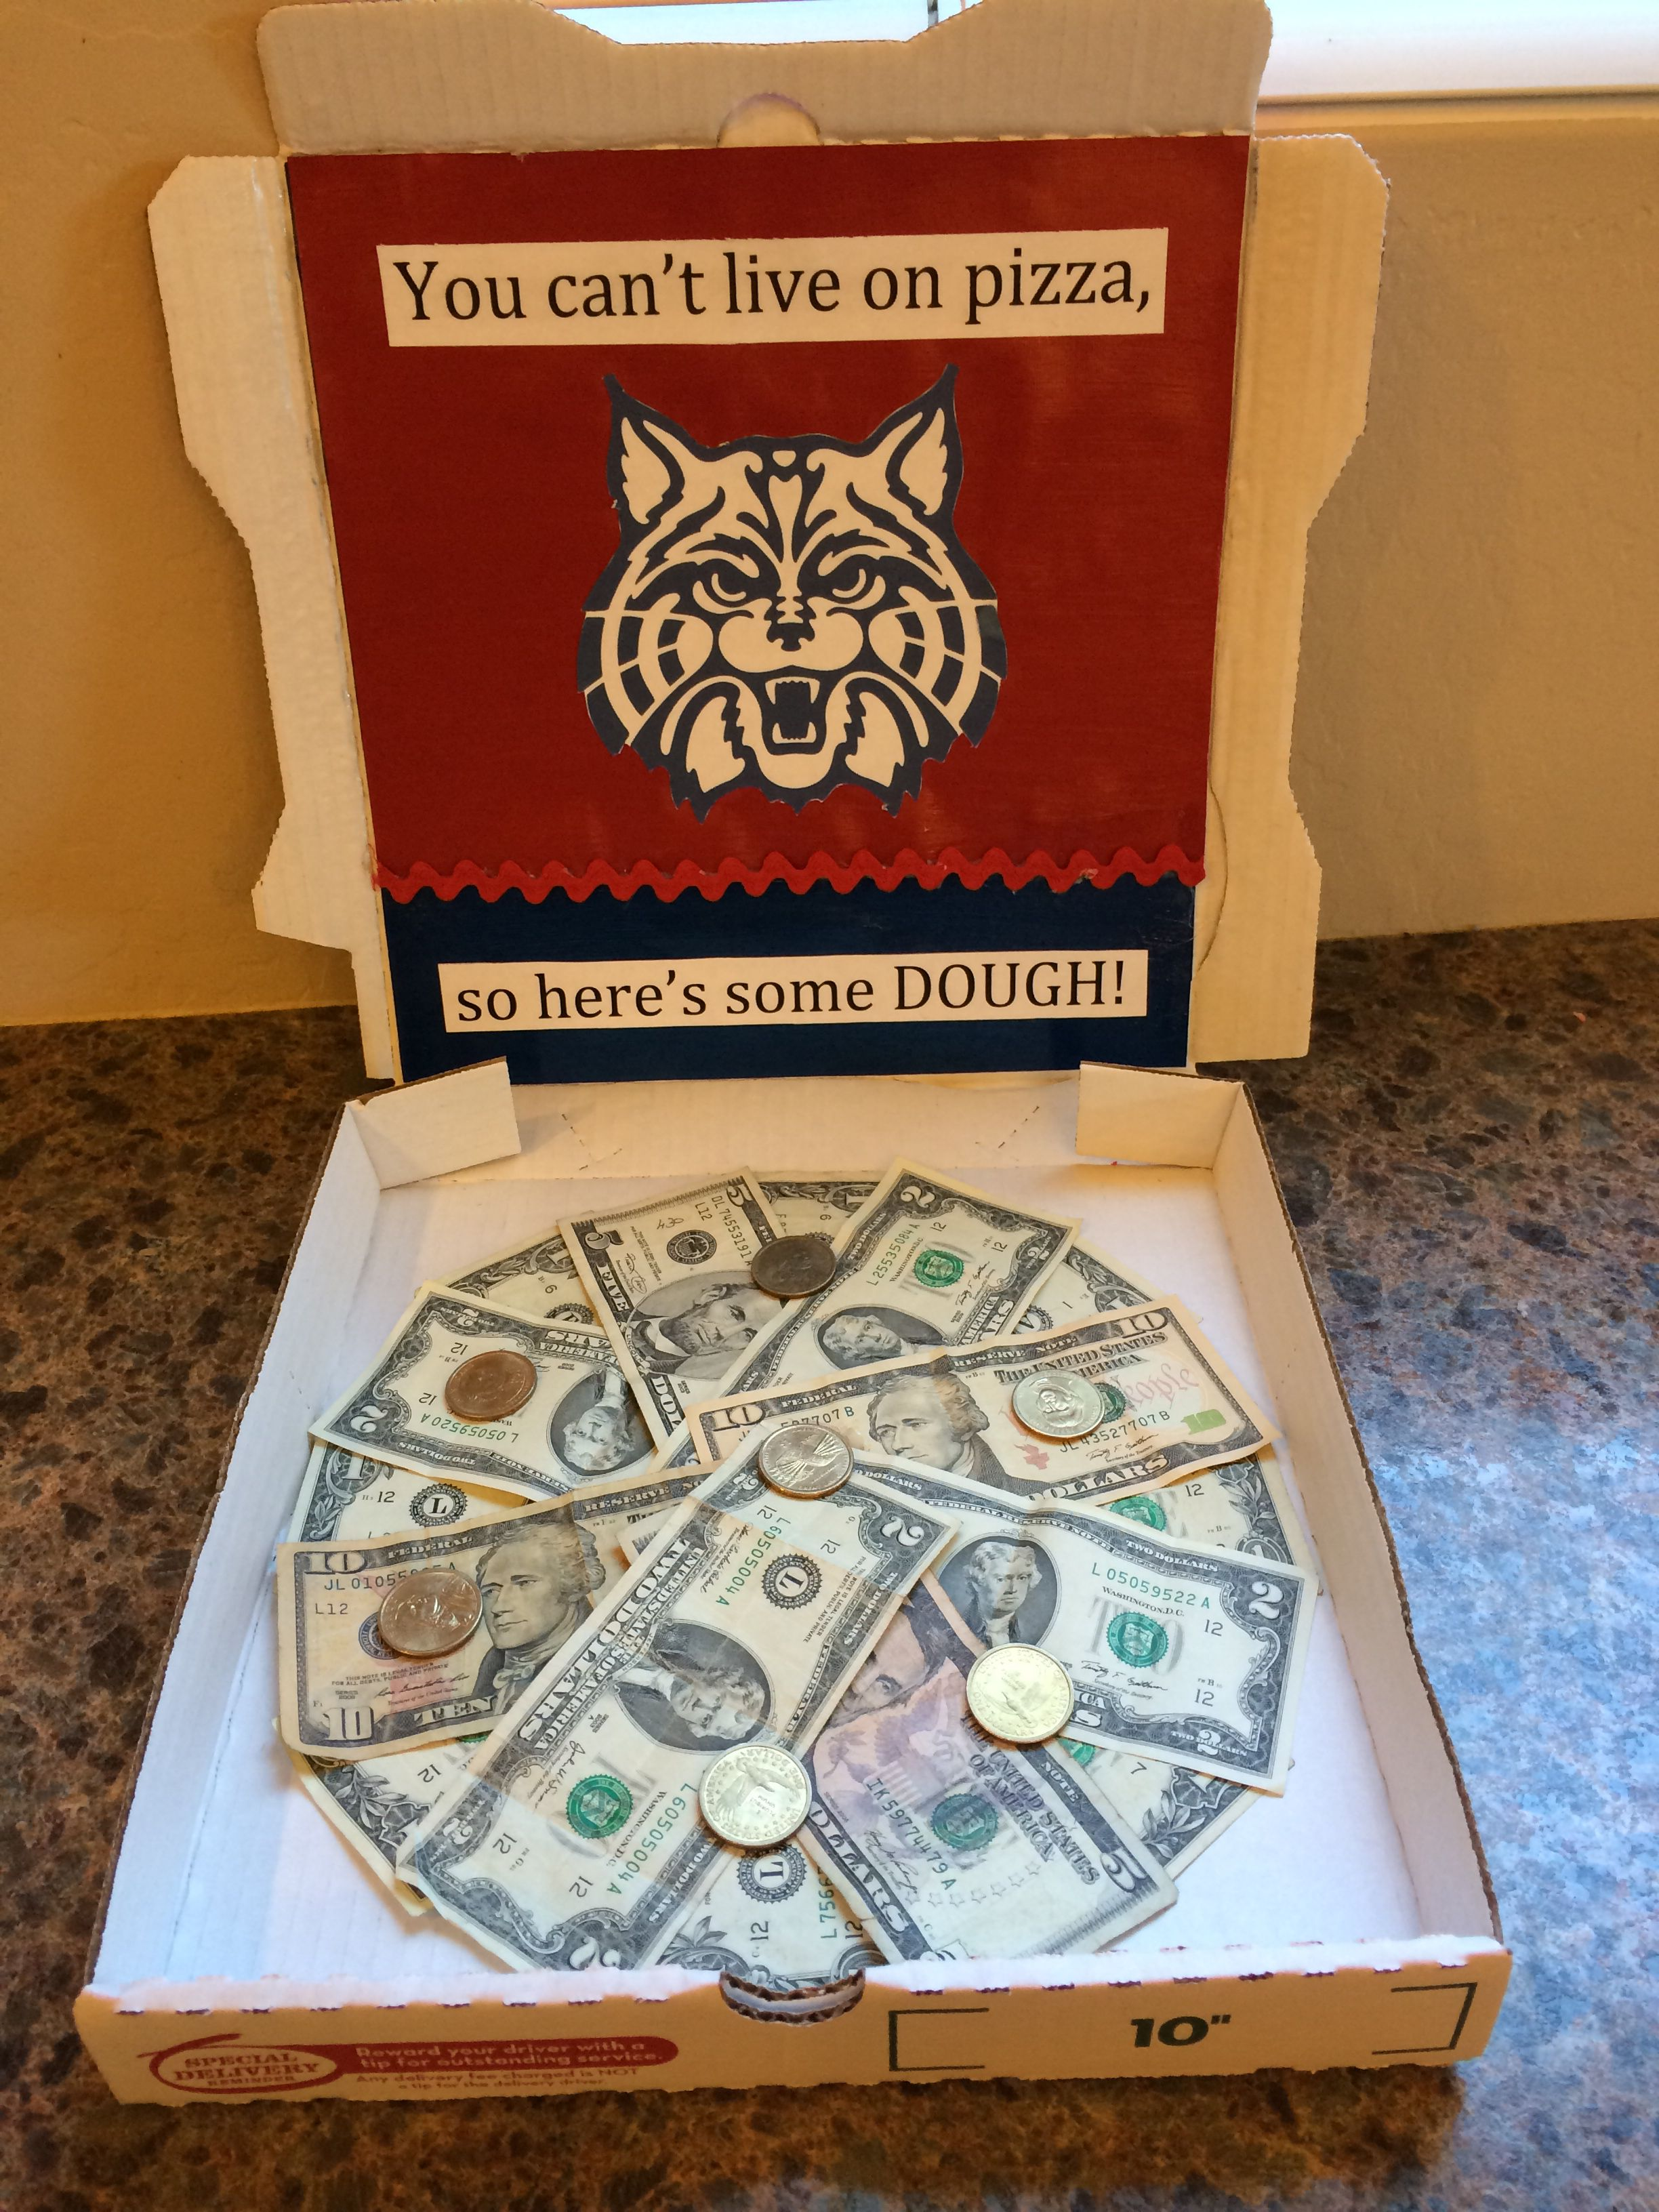 High School Graduation Gift: U of A inspired | Crafty ...